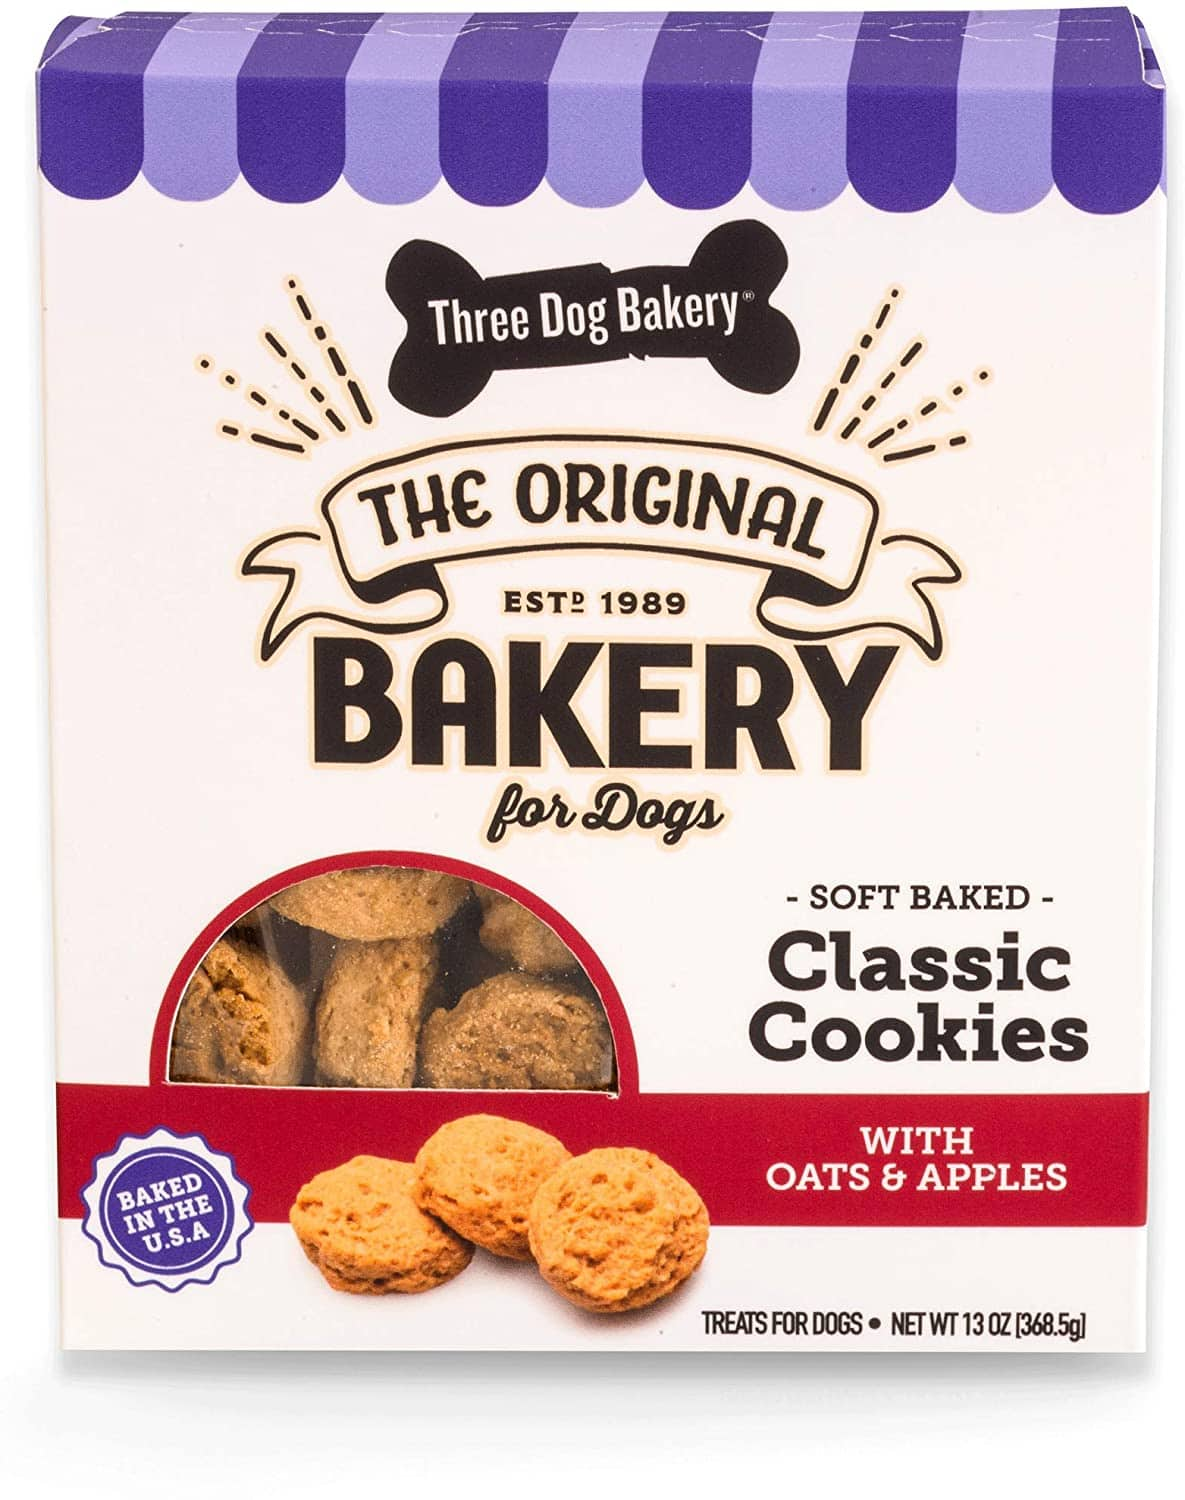 13-Oz Three Dog Bakery Apples & Oats Soft-Baked Dog Treats $3.20 + Free Shipping w/ Amazon Prime or Orders $25+